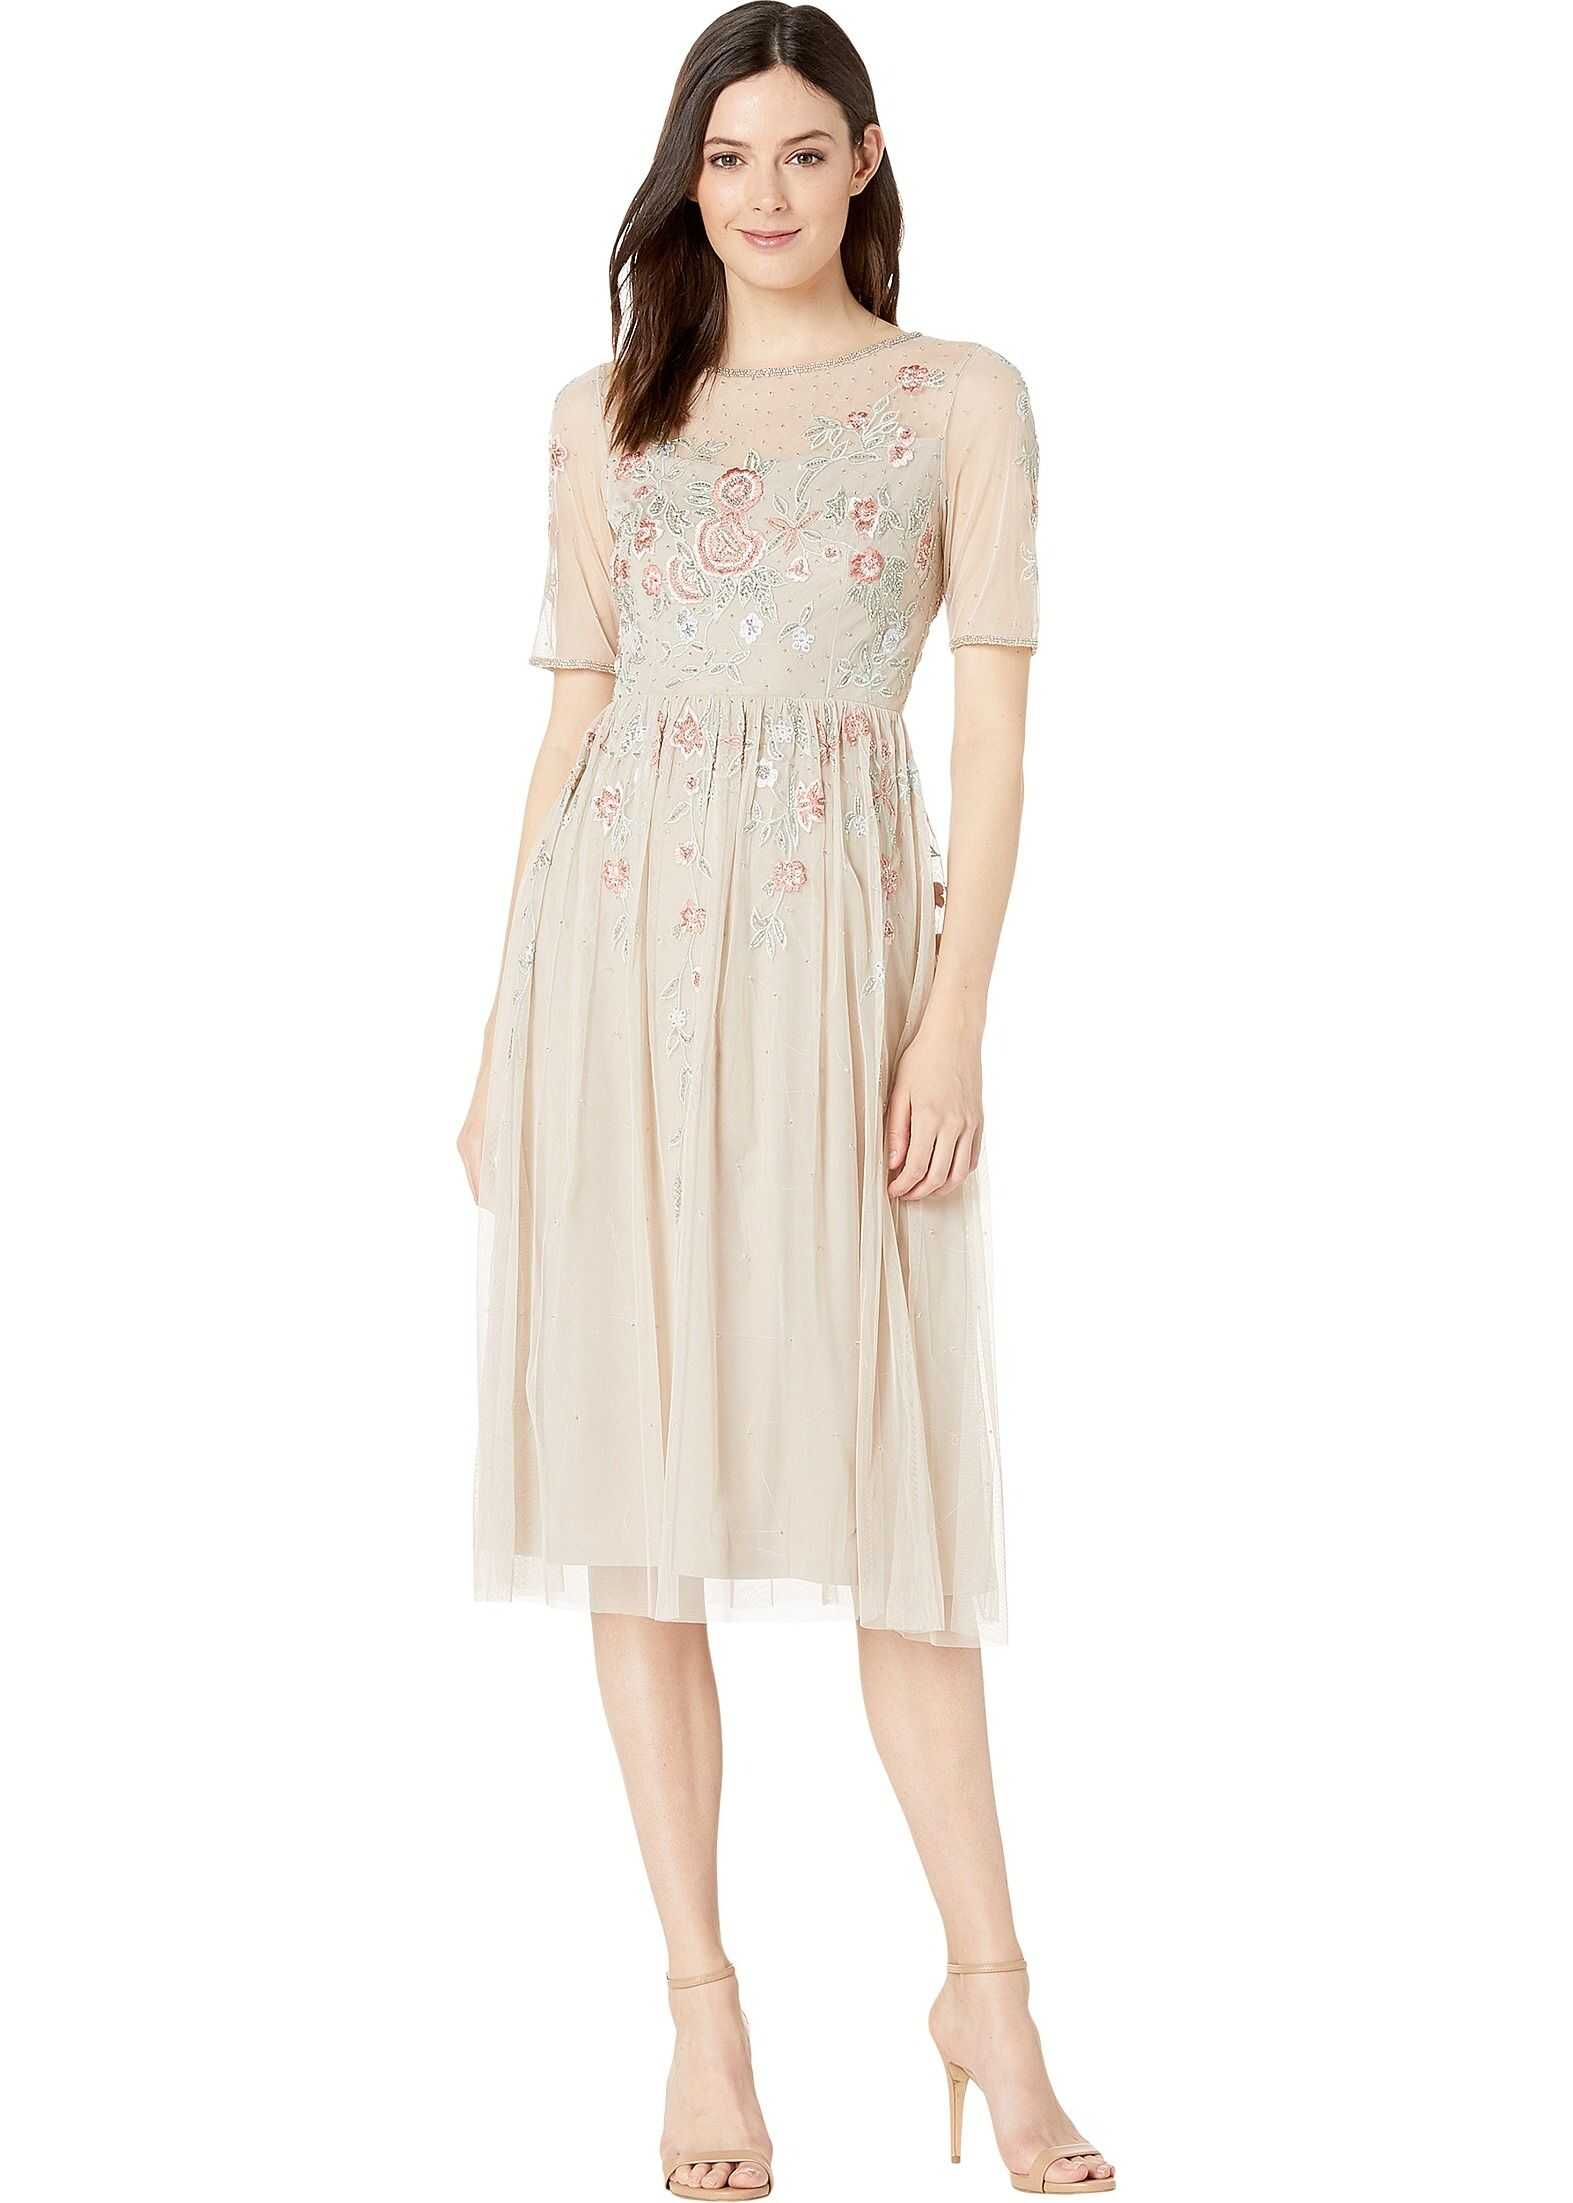 Adrianna Papell Floral Beading Tea-Length Cocktail Dress Biscotti